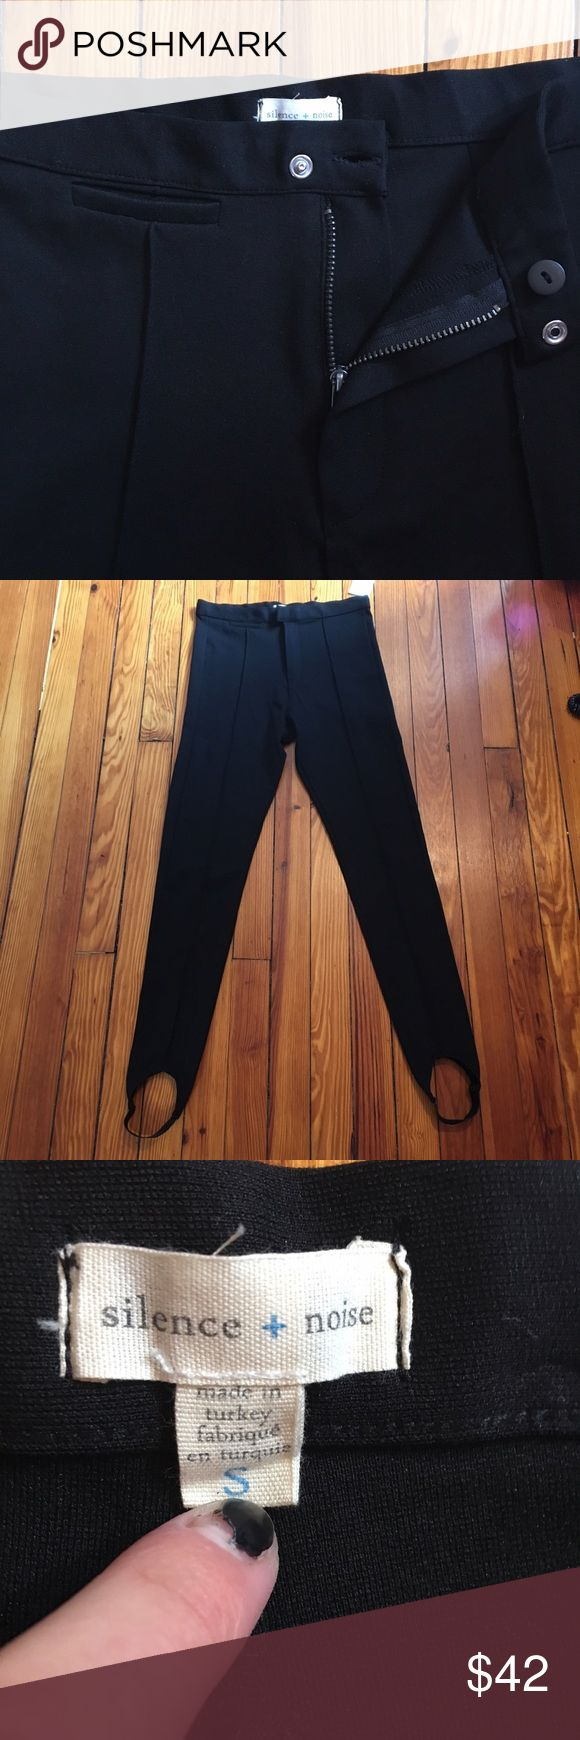 🖤 Urban Outfitters Stirrup Thick Black Leggings Silence + Noise brand from Urban Outfitters! Similar to a riding pant, these enhanced leggings have elastic stirrups, zip button & snap closure, soft stretchy thick material and slimming vertical seams in pure black. New with tags, only ever tried on. Very comfy. Size small 27 inch waist with stretch. Please feel free to ask any questions and make offers! 🌞 Urban Outfitters Pants Leggings